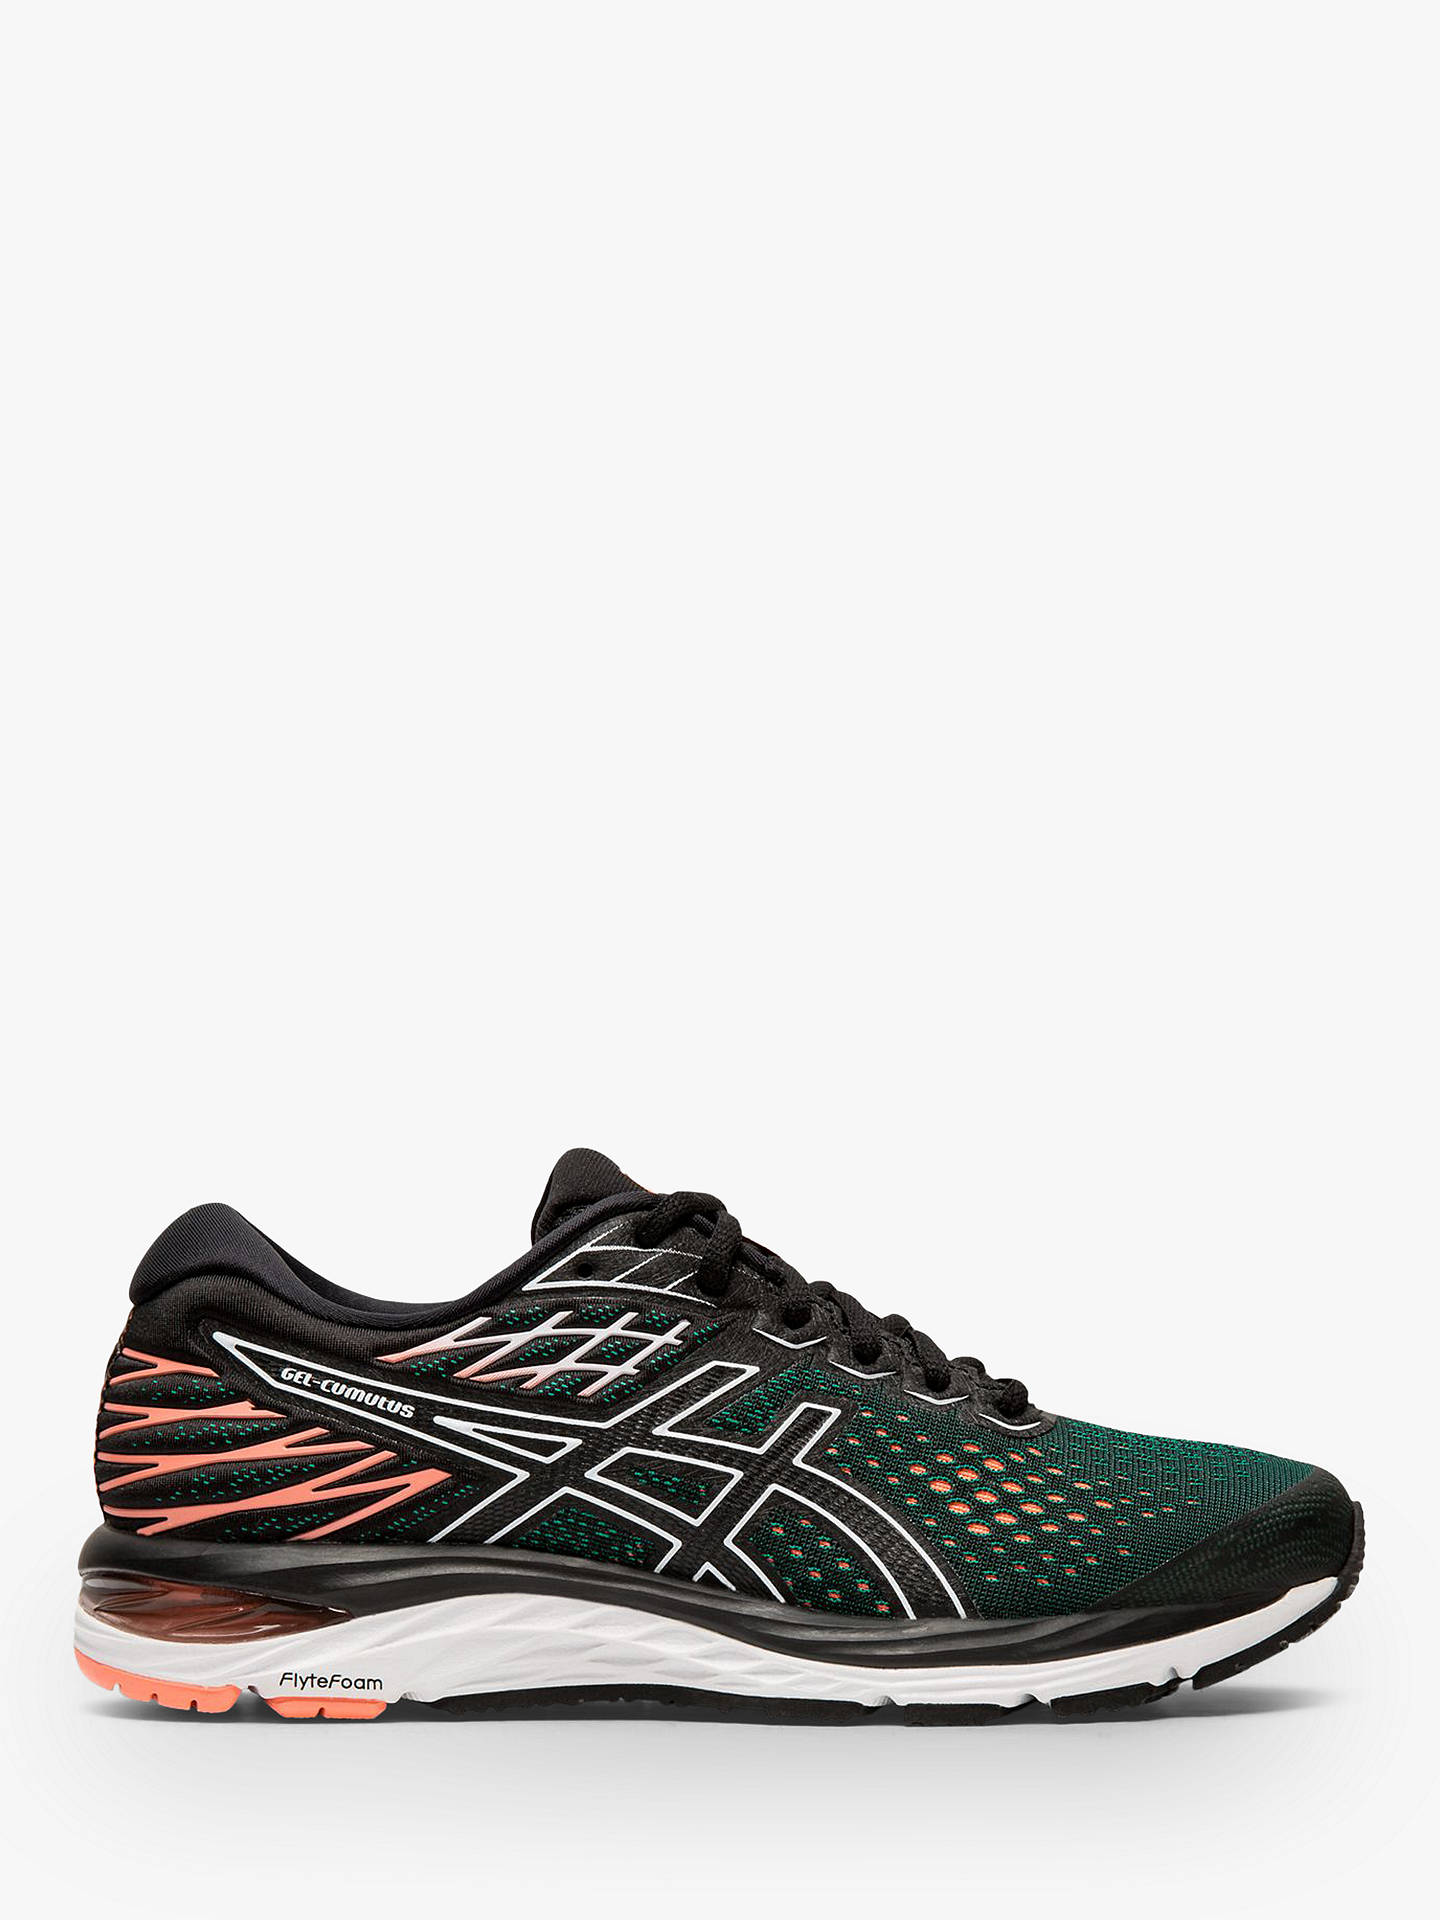 best website 6dc3e e6310 ASICS GEL-CUMULUS 21 Women's Running Shoes, Black/Sun Coral